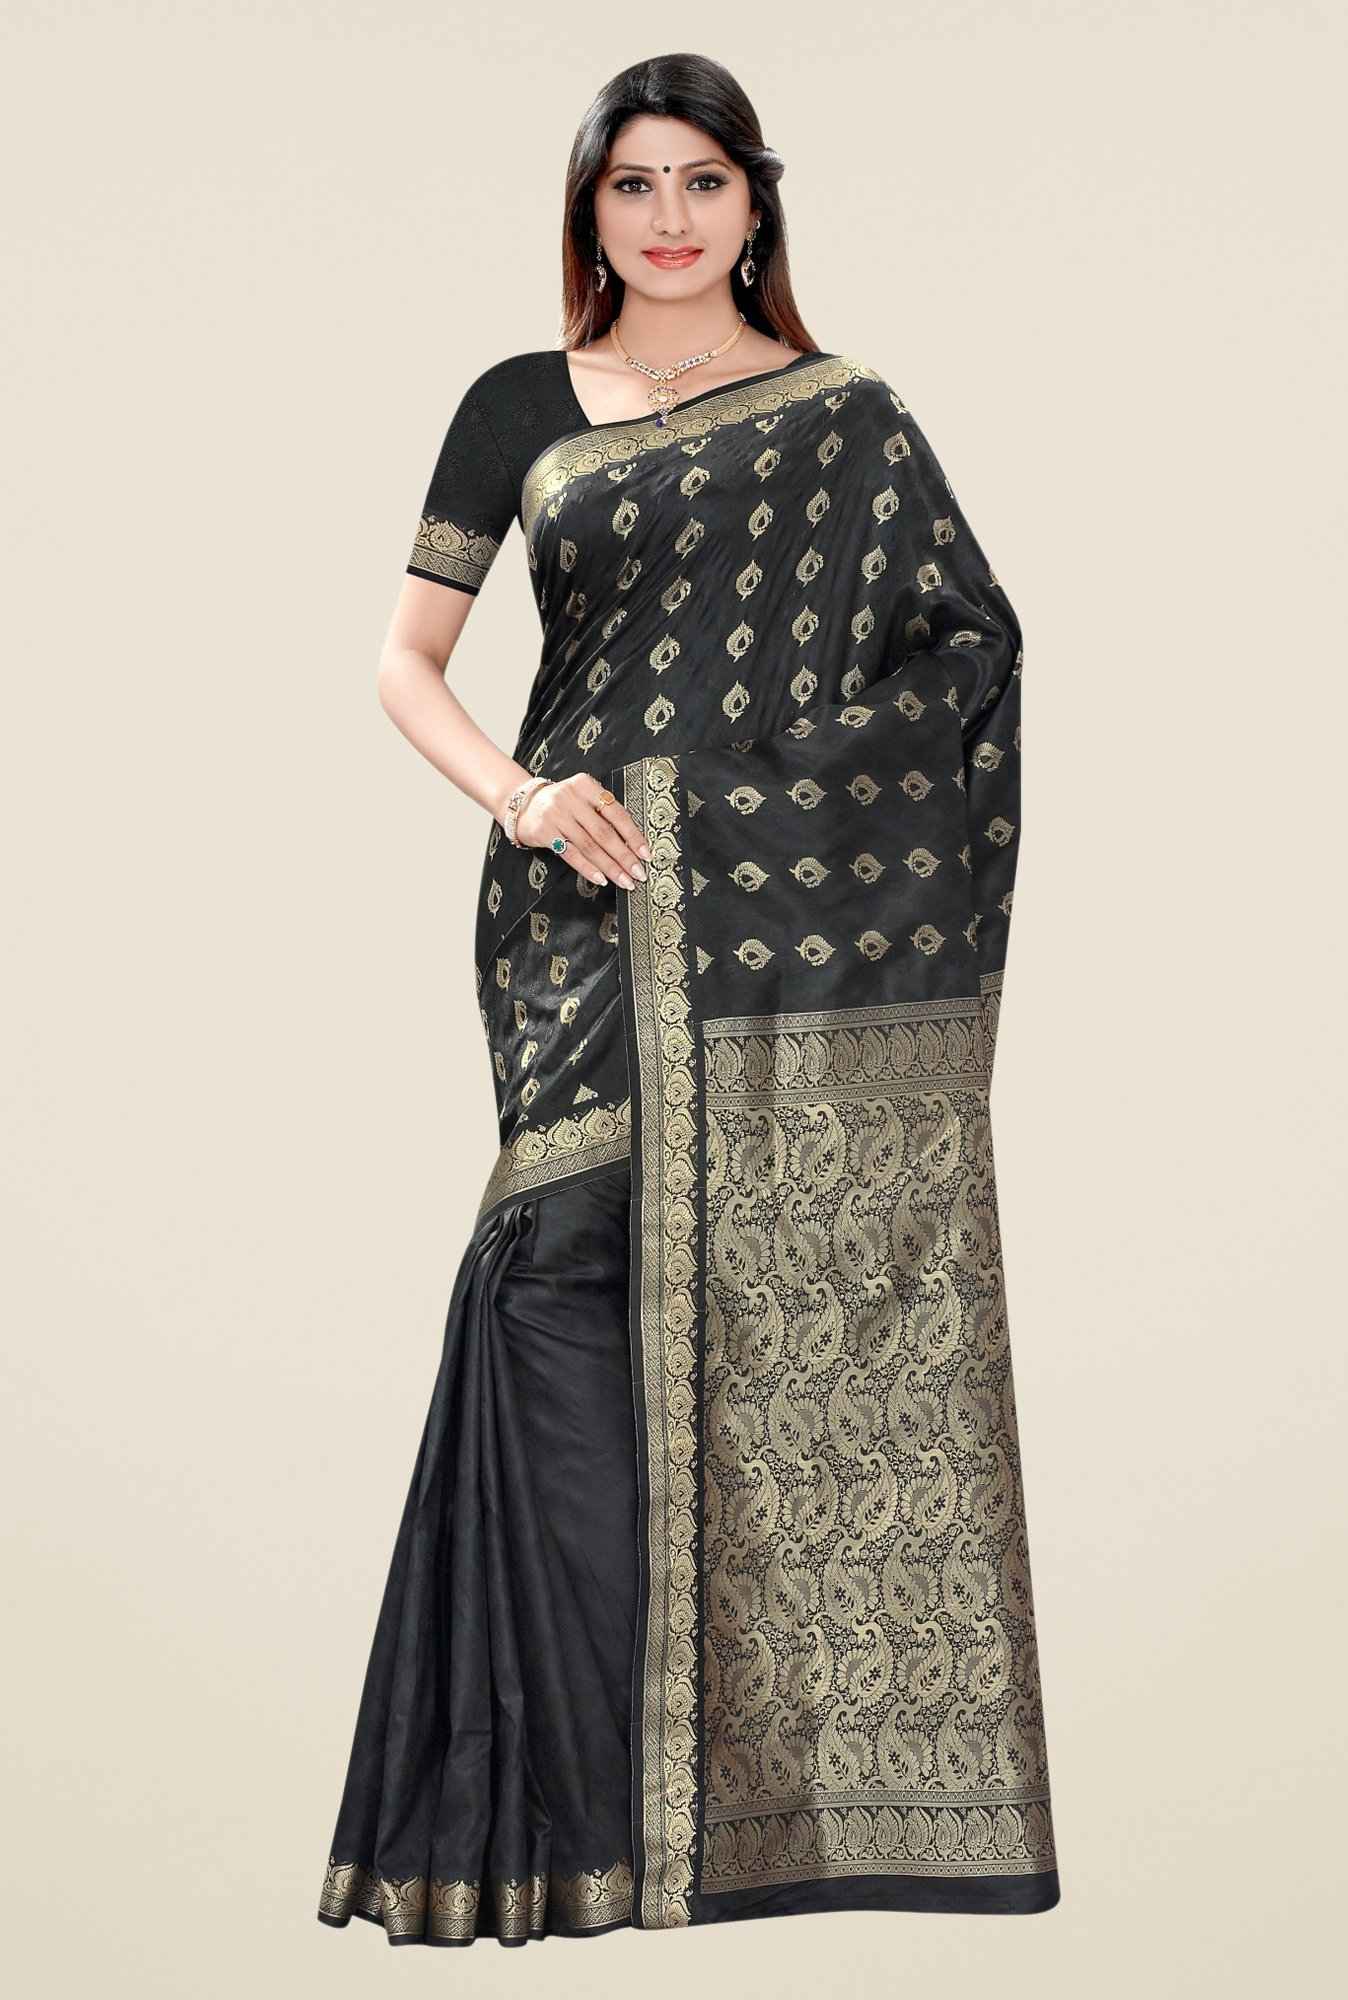 Triveni Black Printed Art Silk Saree